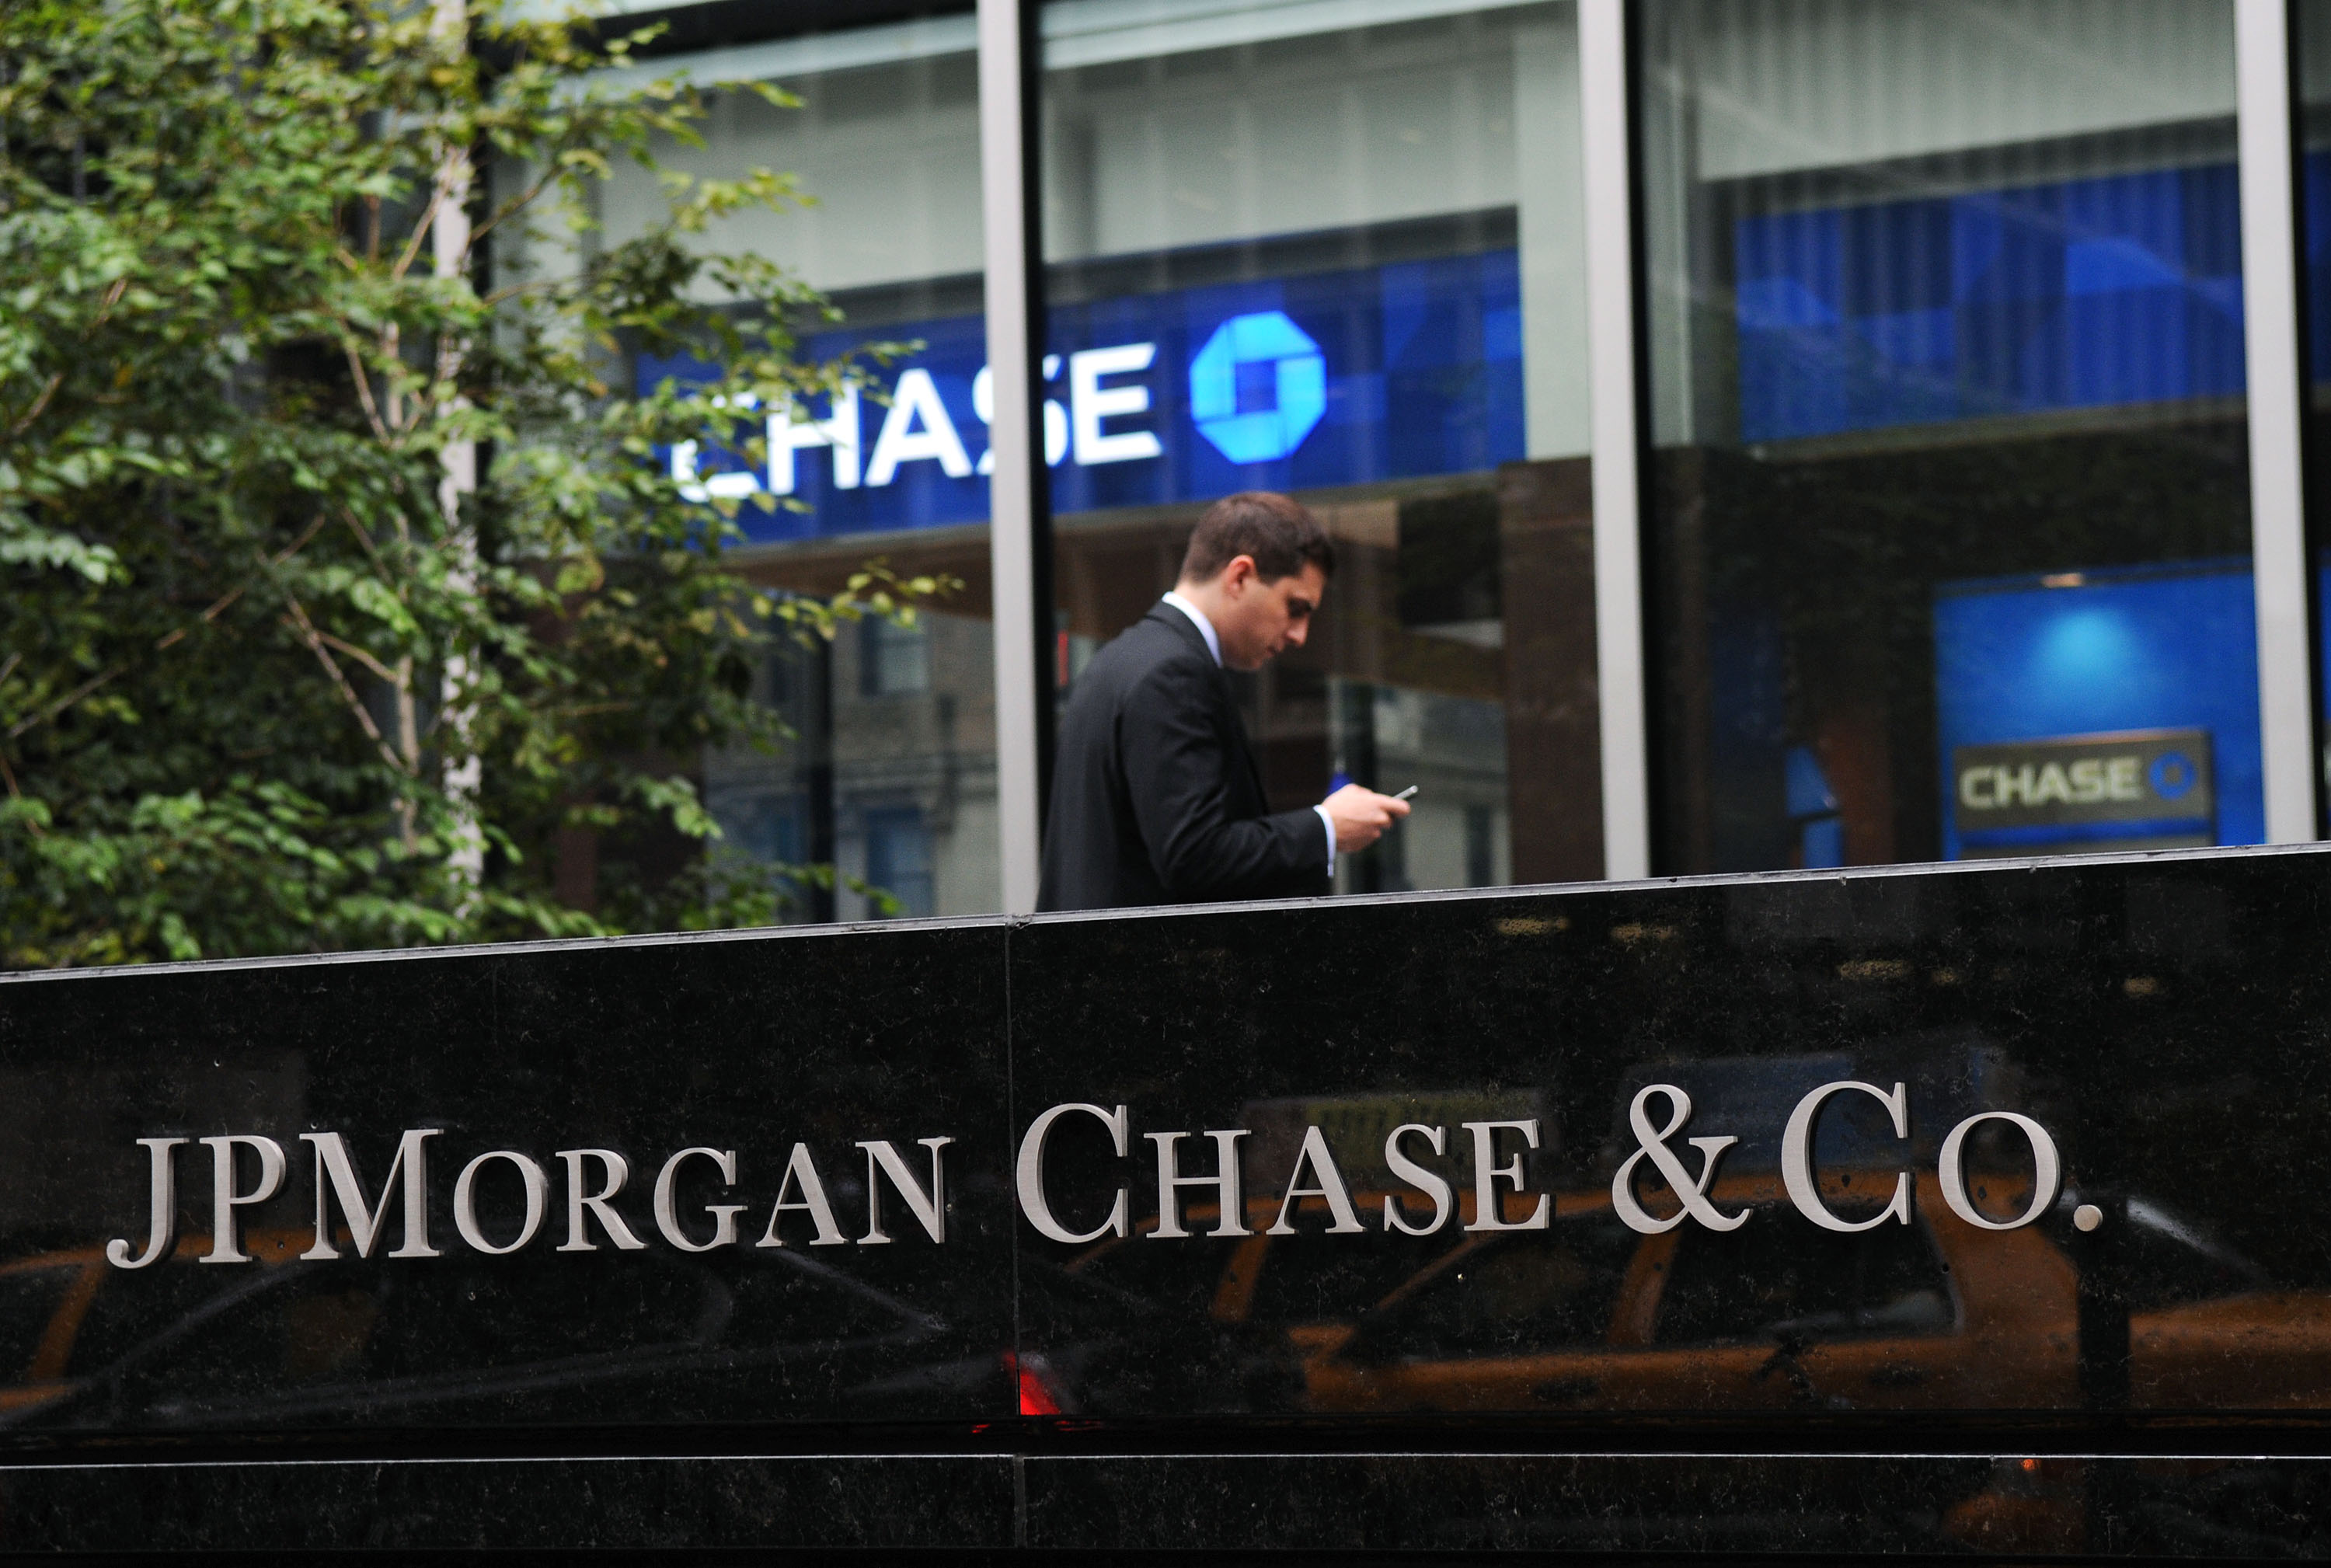 JPMorgan Chase says massive data breach affected 76 million